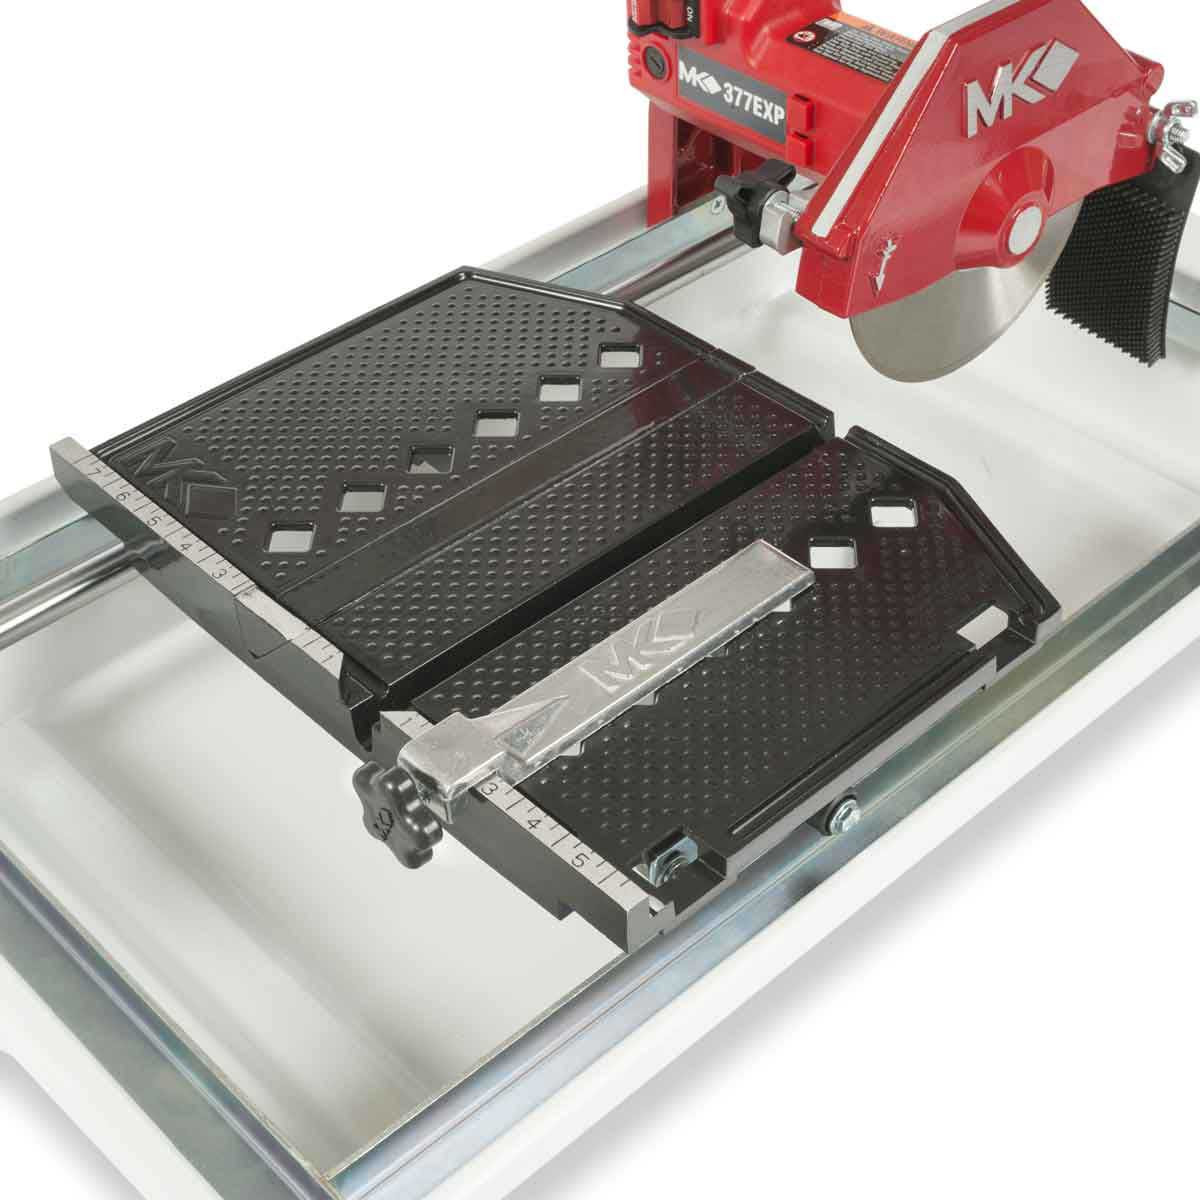 MK-377EXP Tile Saw large cutting table